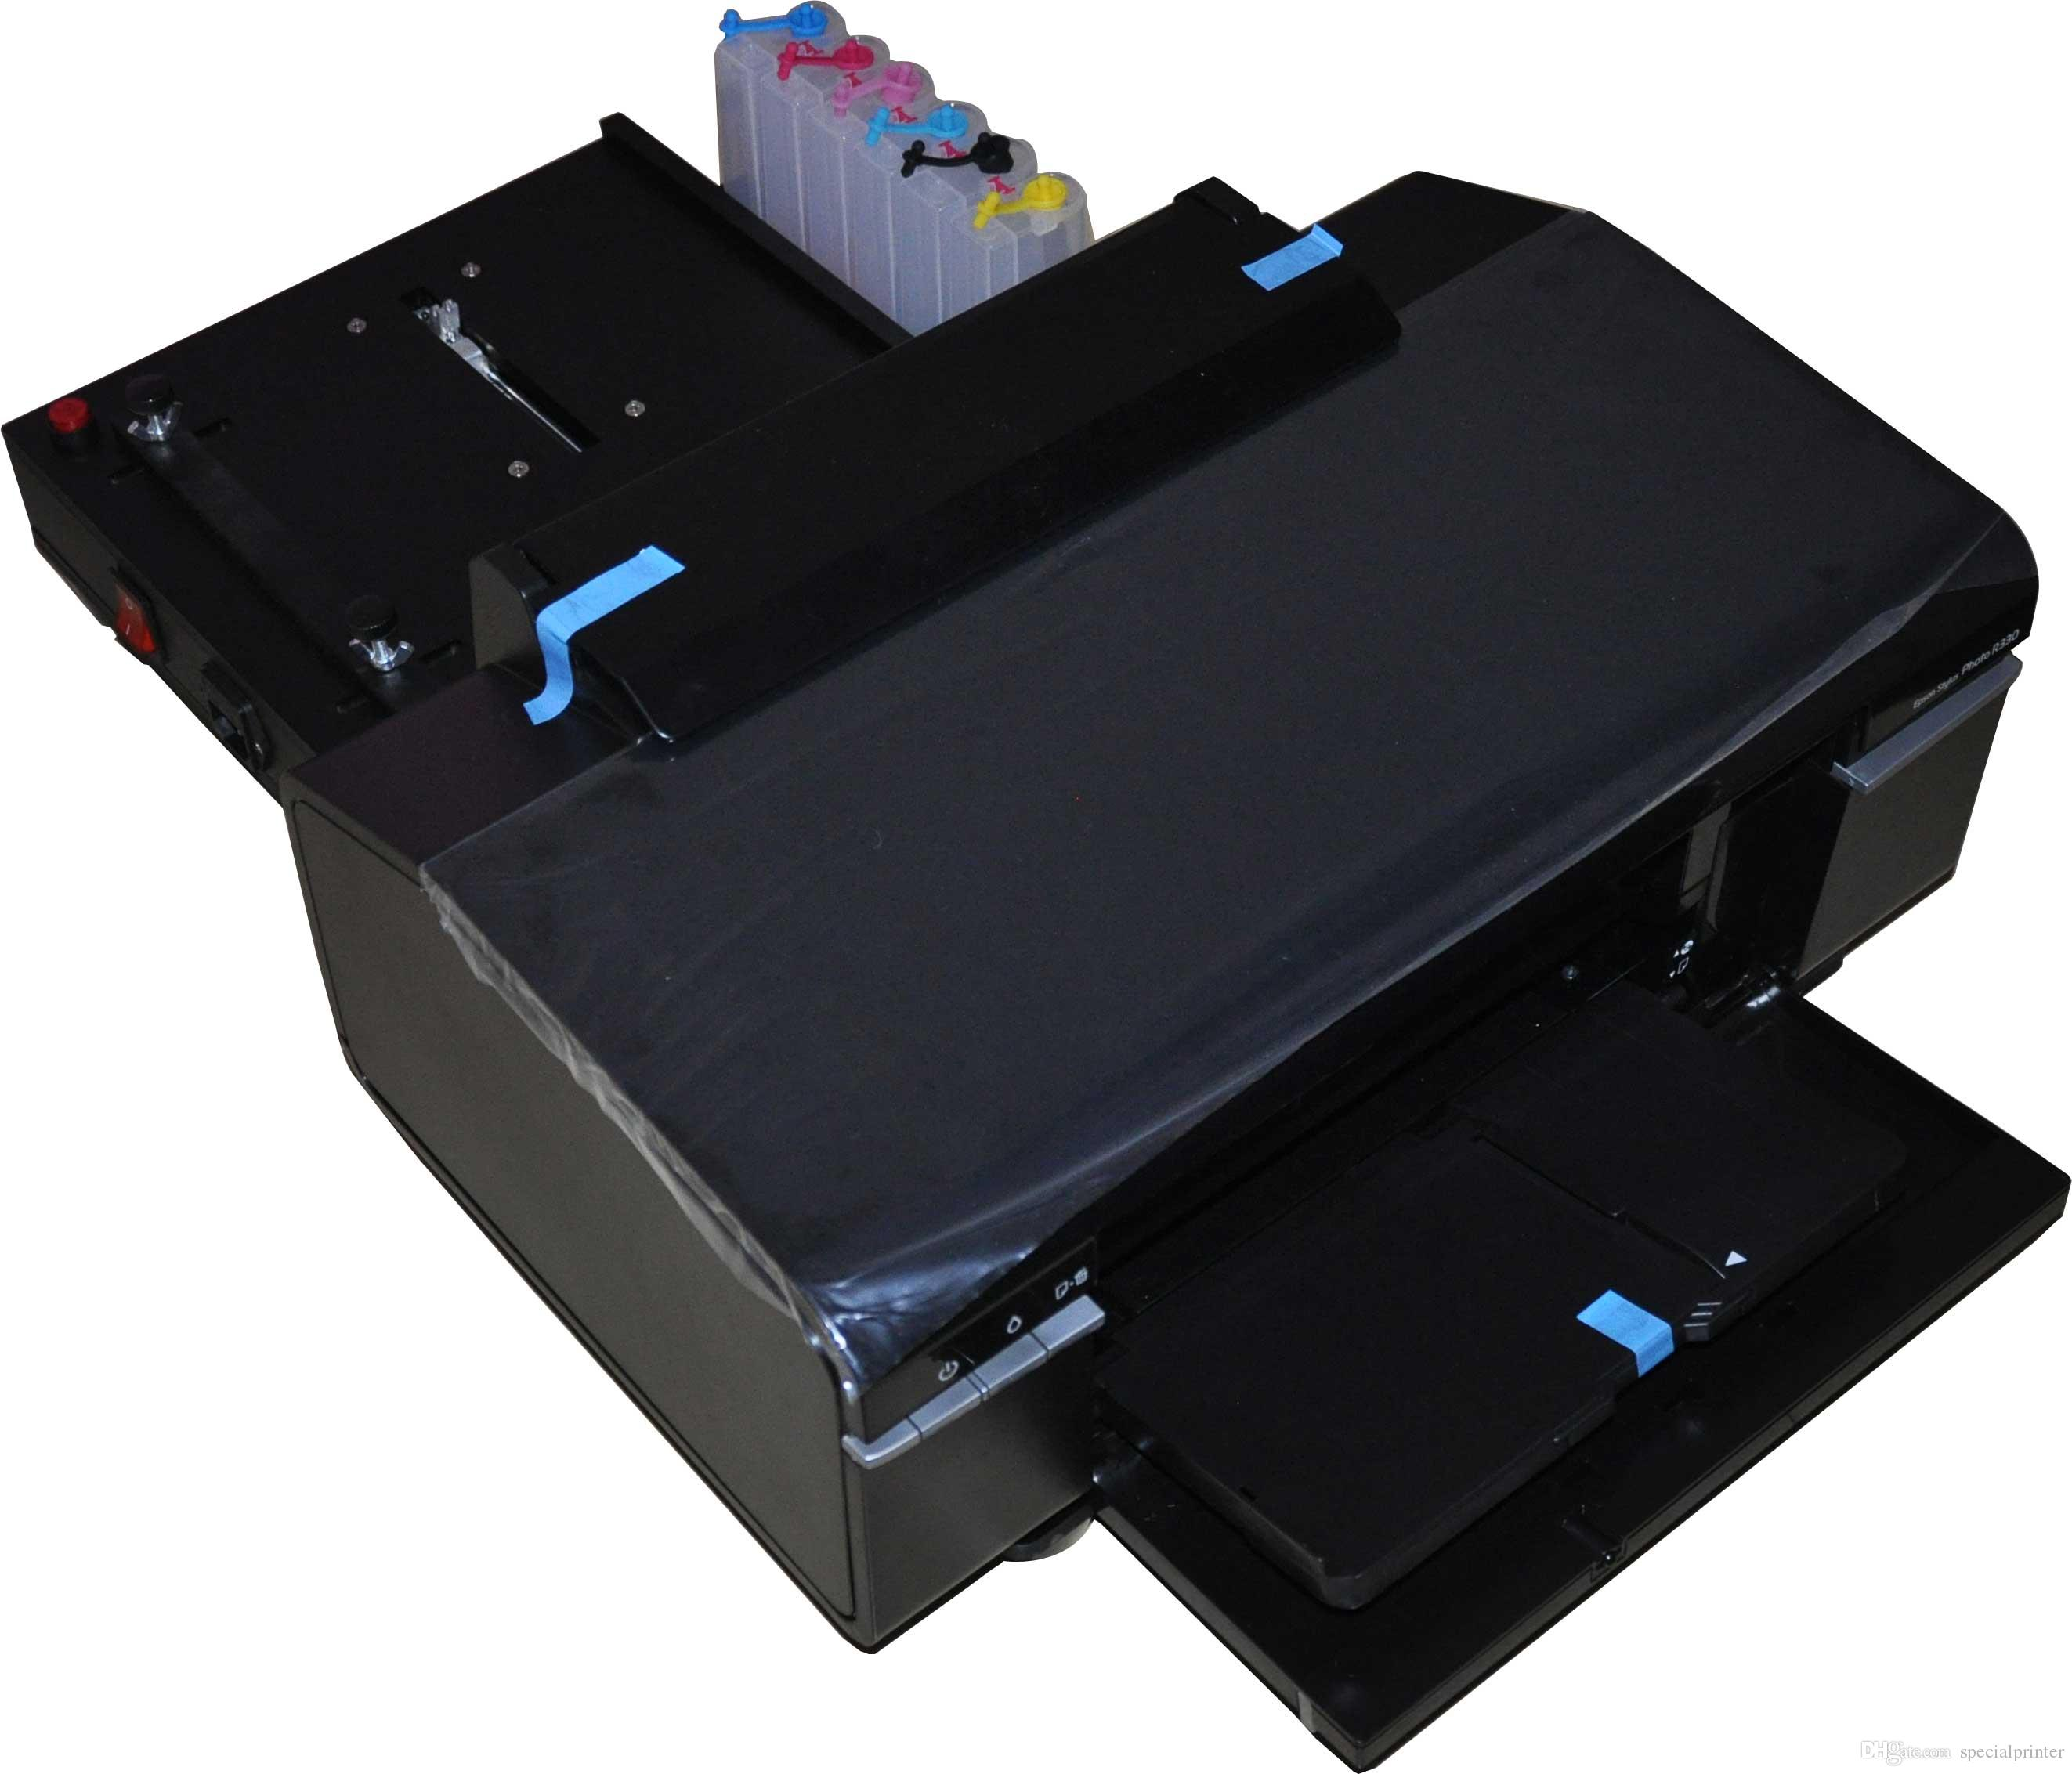 inkjet id card printer automatic feeding trays economical pvc card printing easy operation best inkjet printer best laser printer from specialprinter - Pvc Card Printer